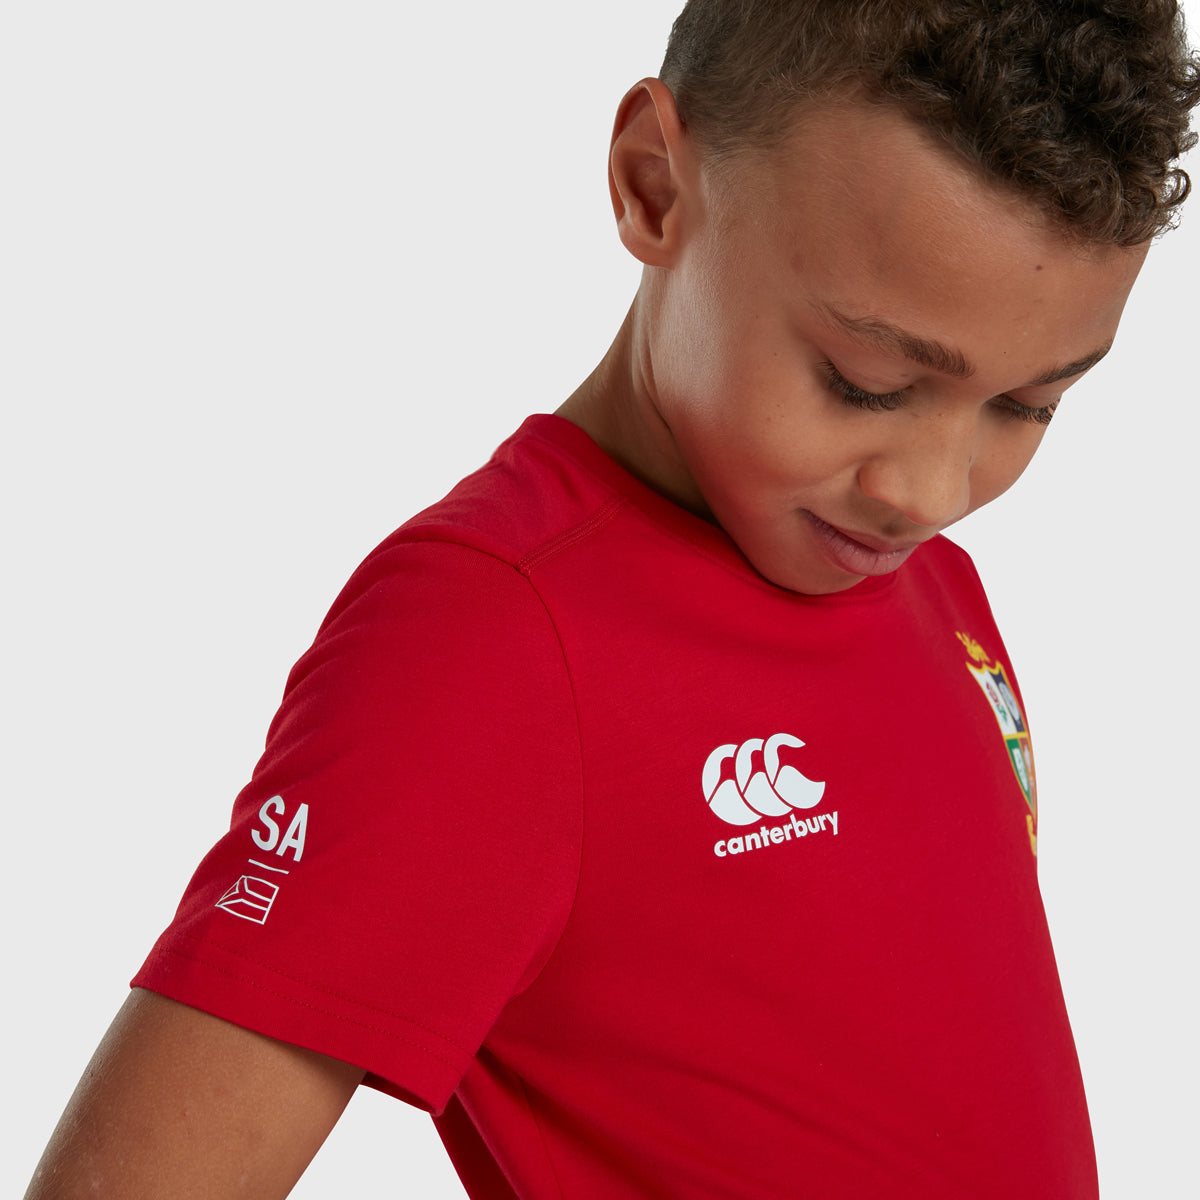 British & Irish Lions SA 2021 Kid's Cotton Tee Red